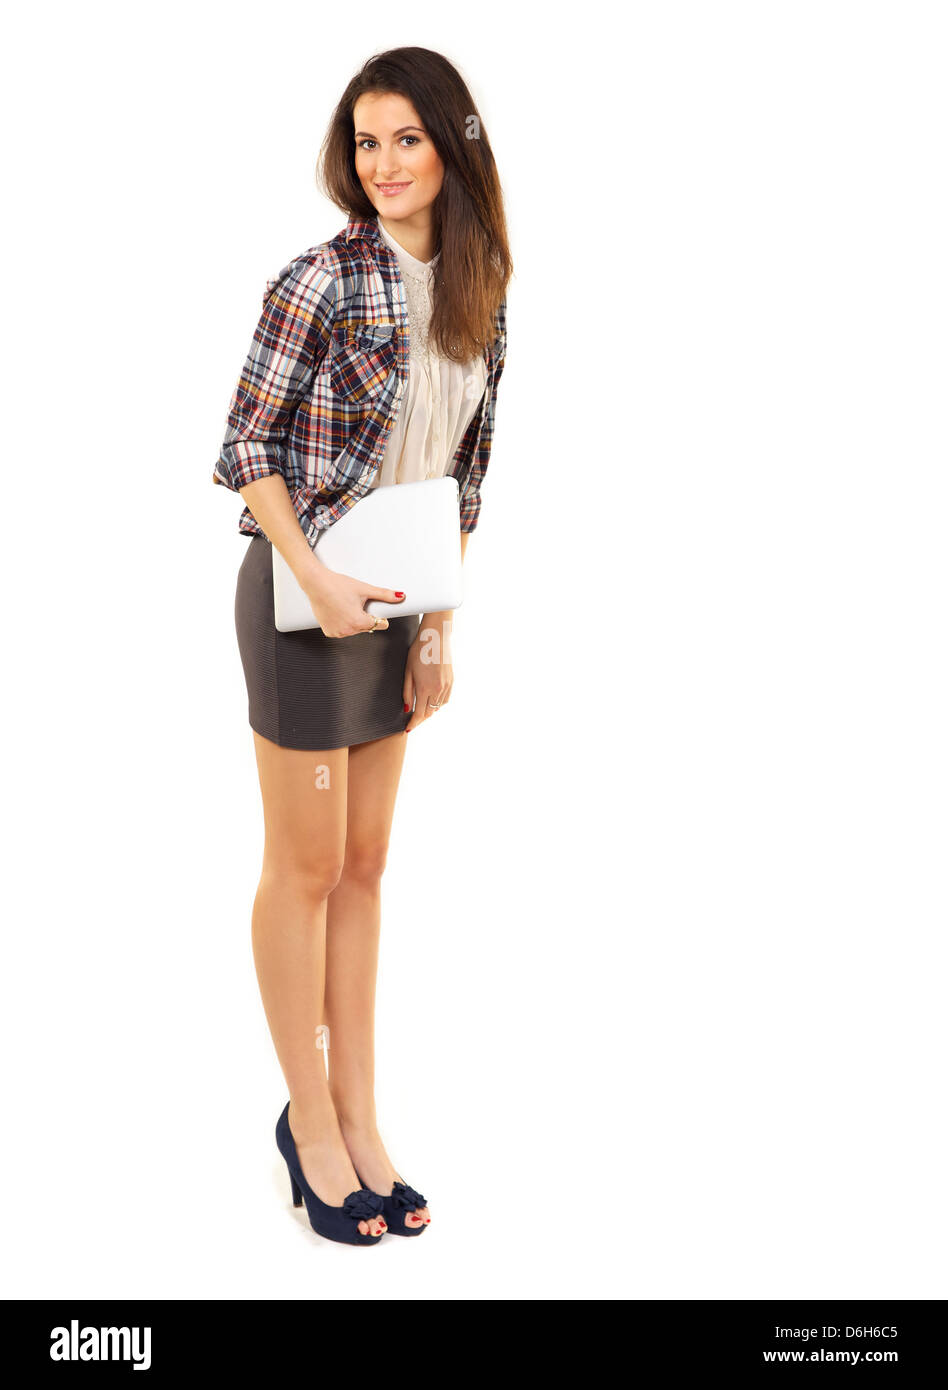 College student in the studio standing while holding her laptop - Stock Image